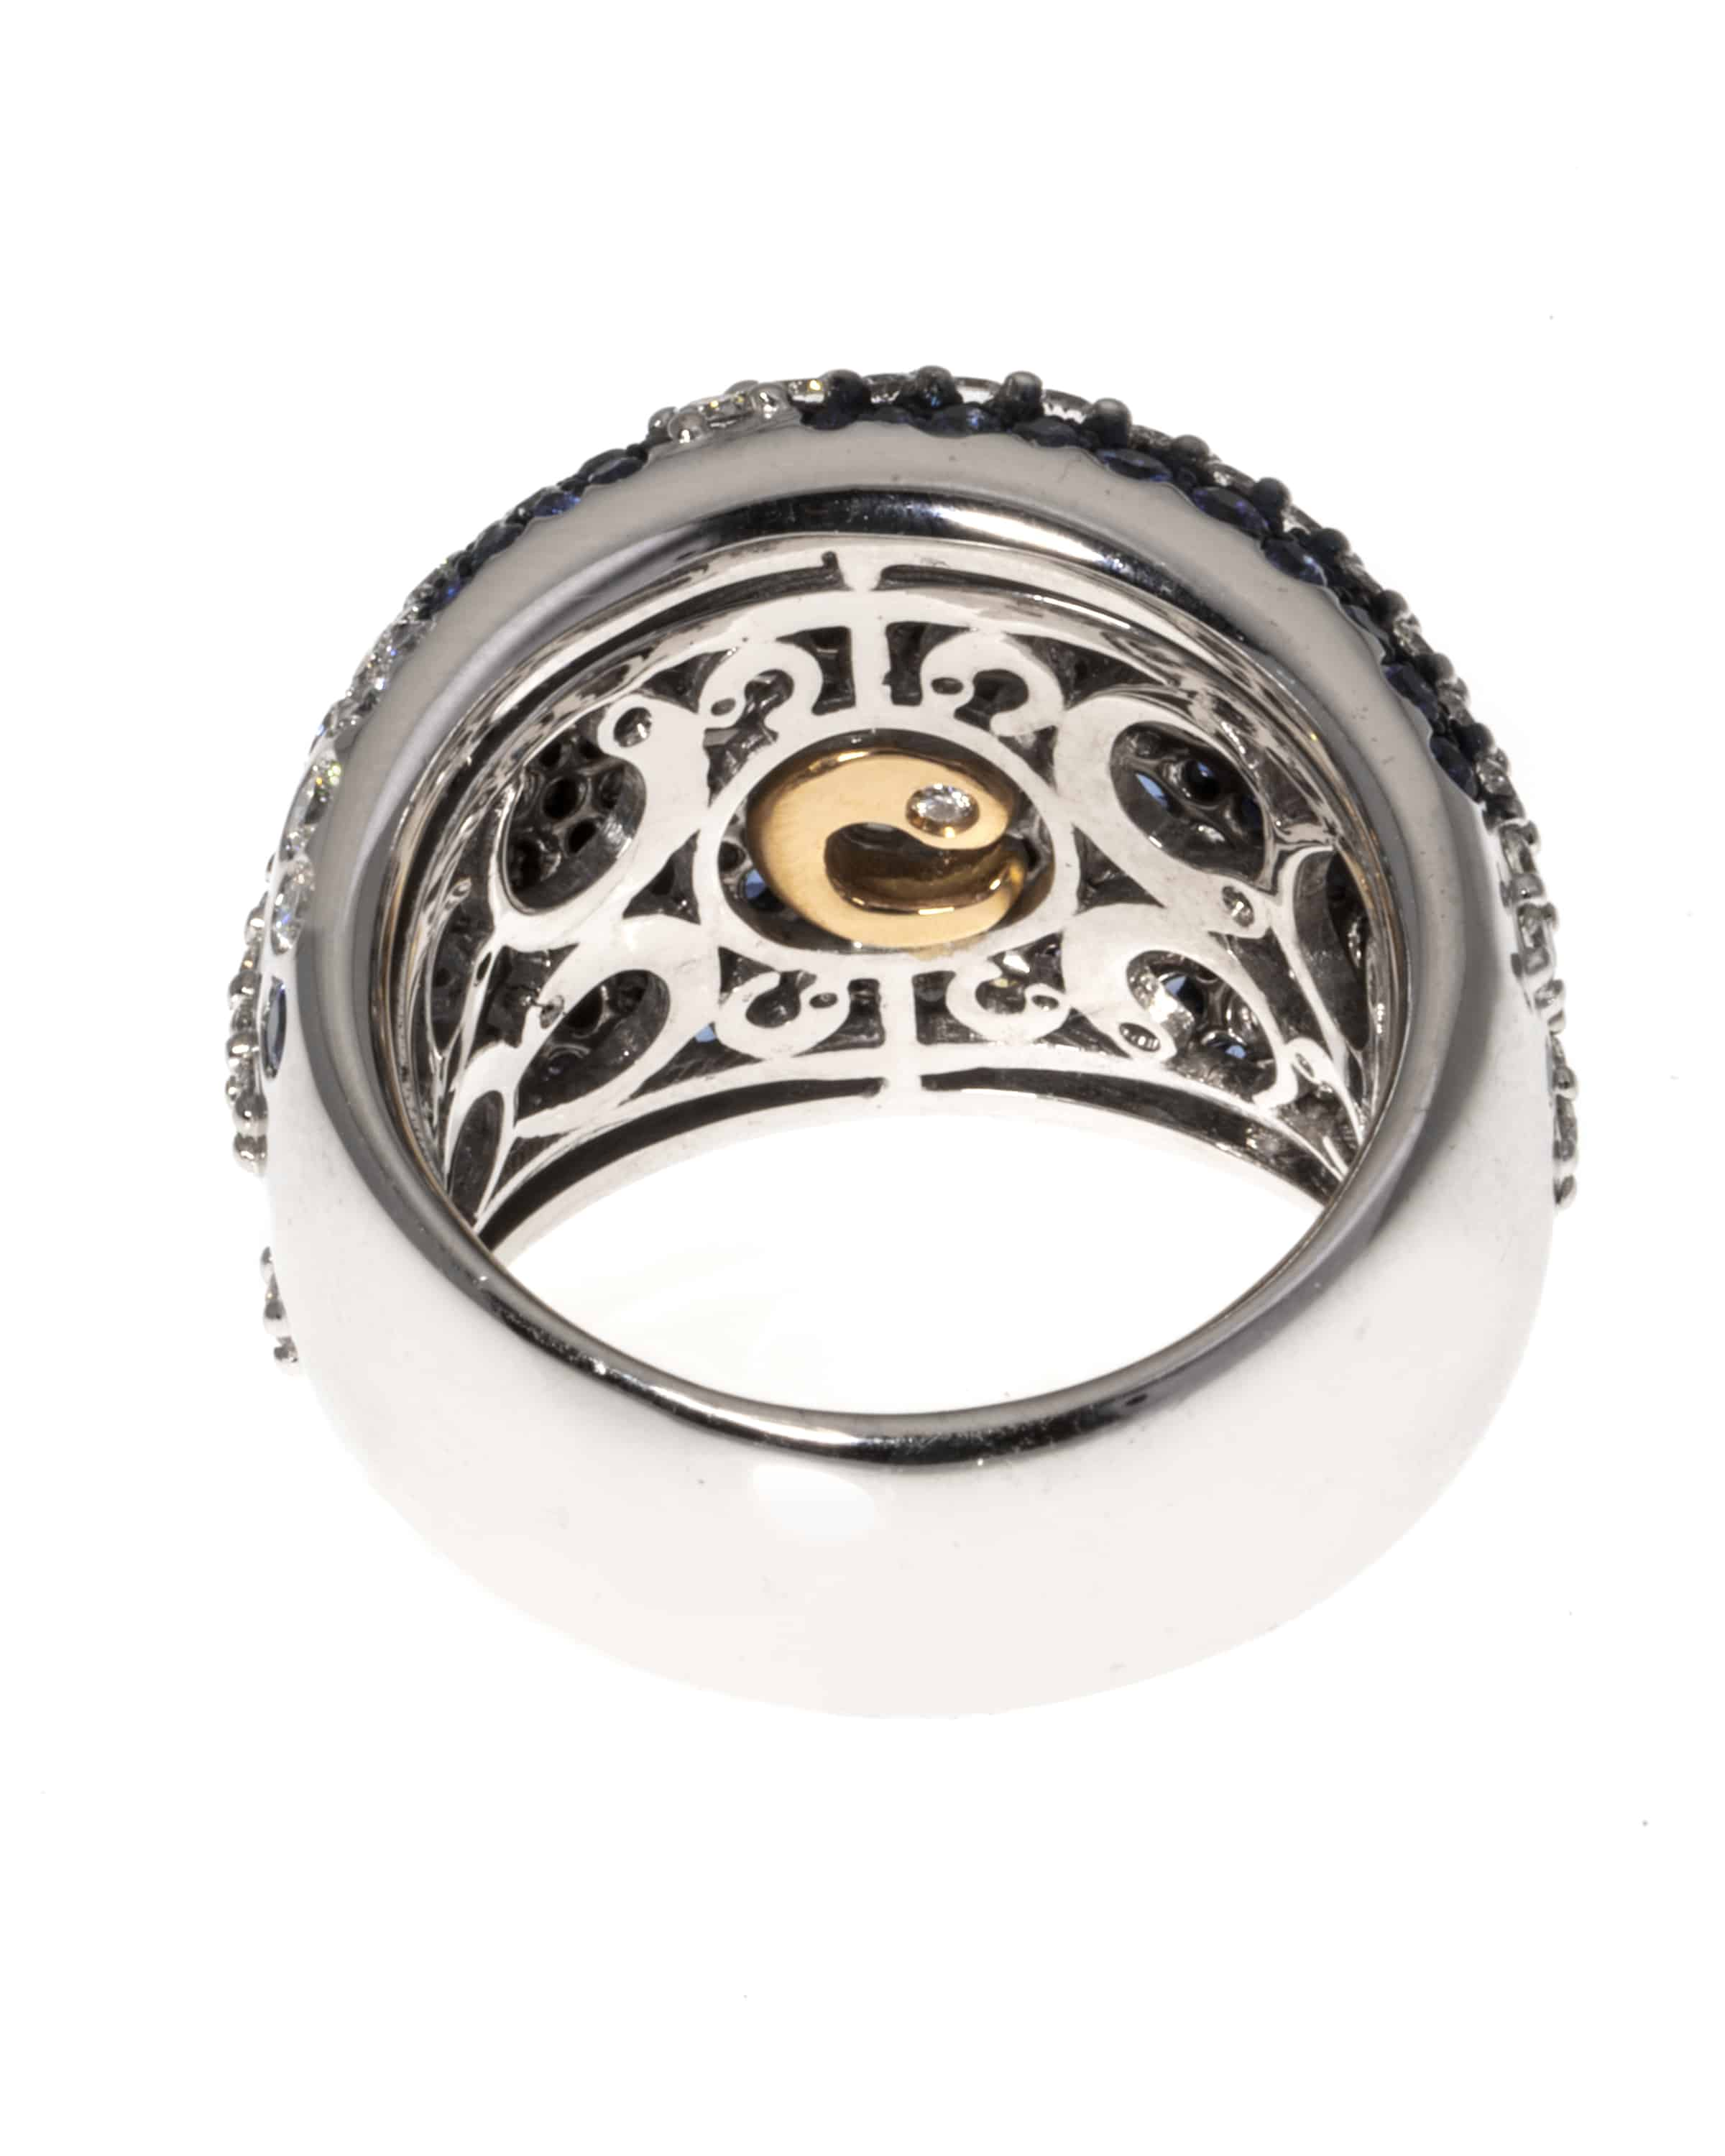 Crivelli 18k White Gold Diamond And Sapphire Band Ring Size 6.75. 259-AN448 - 35718495